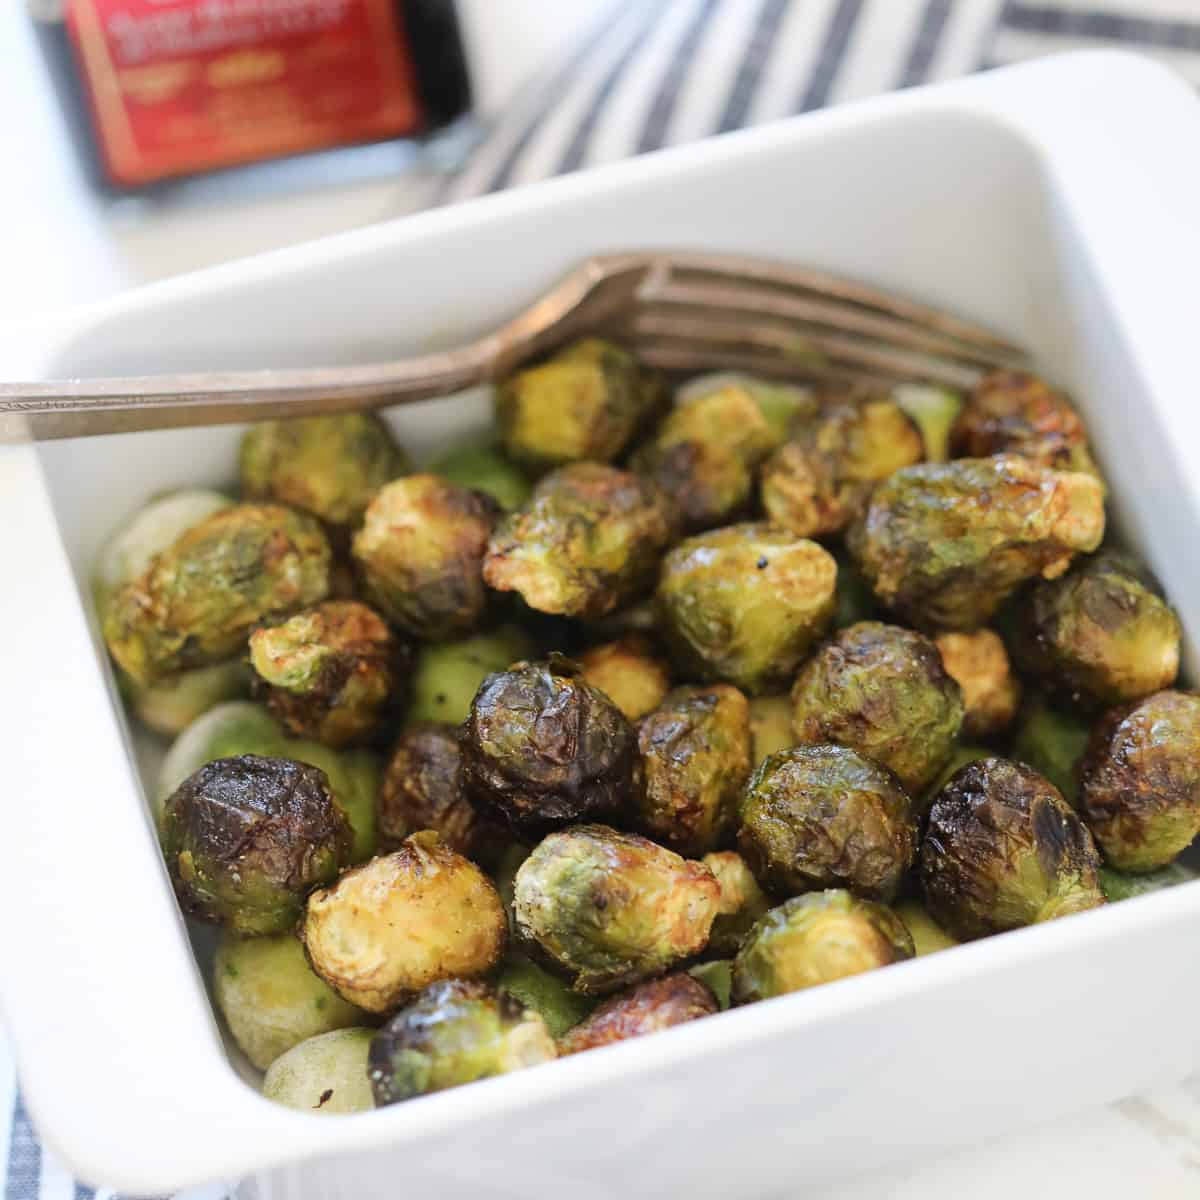 air fryer frozen brussel sprouts after roasting with balsamic vinegar